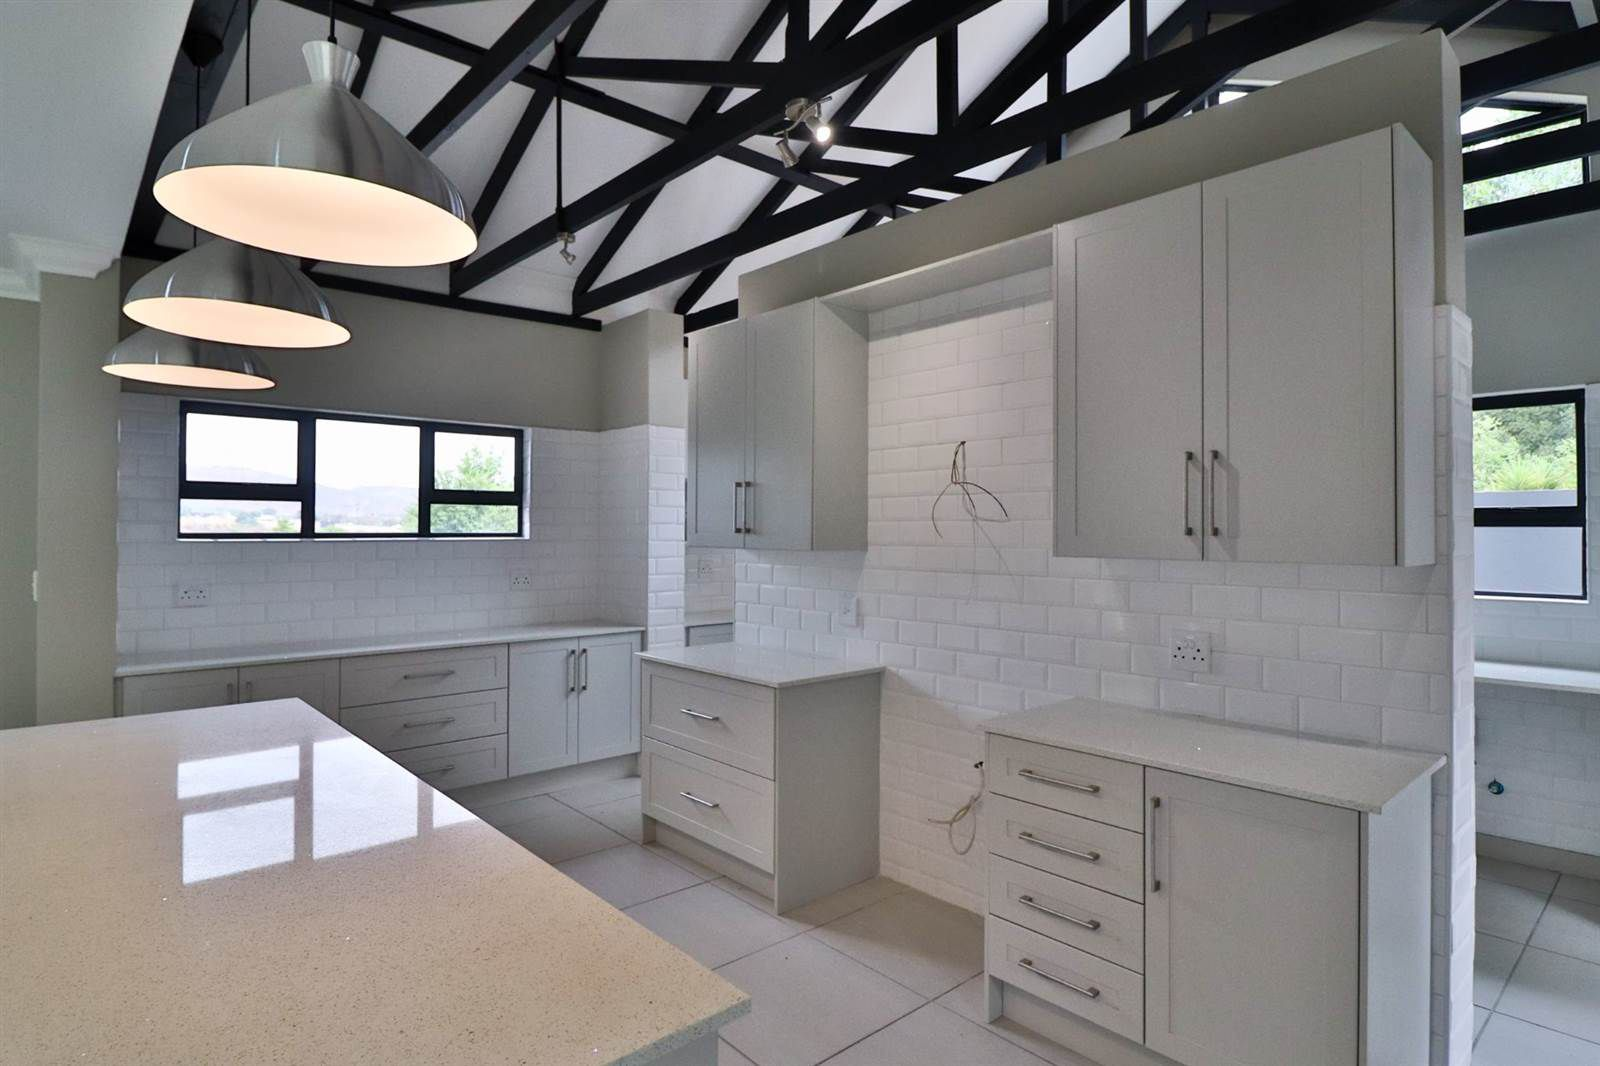 House in Xanadu Eco Park - Modern kitchen with loads of cupboards